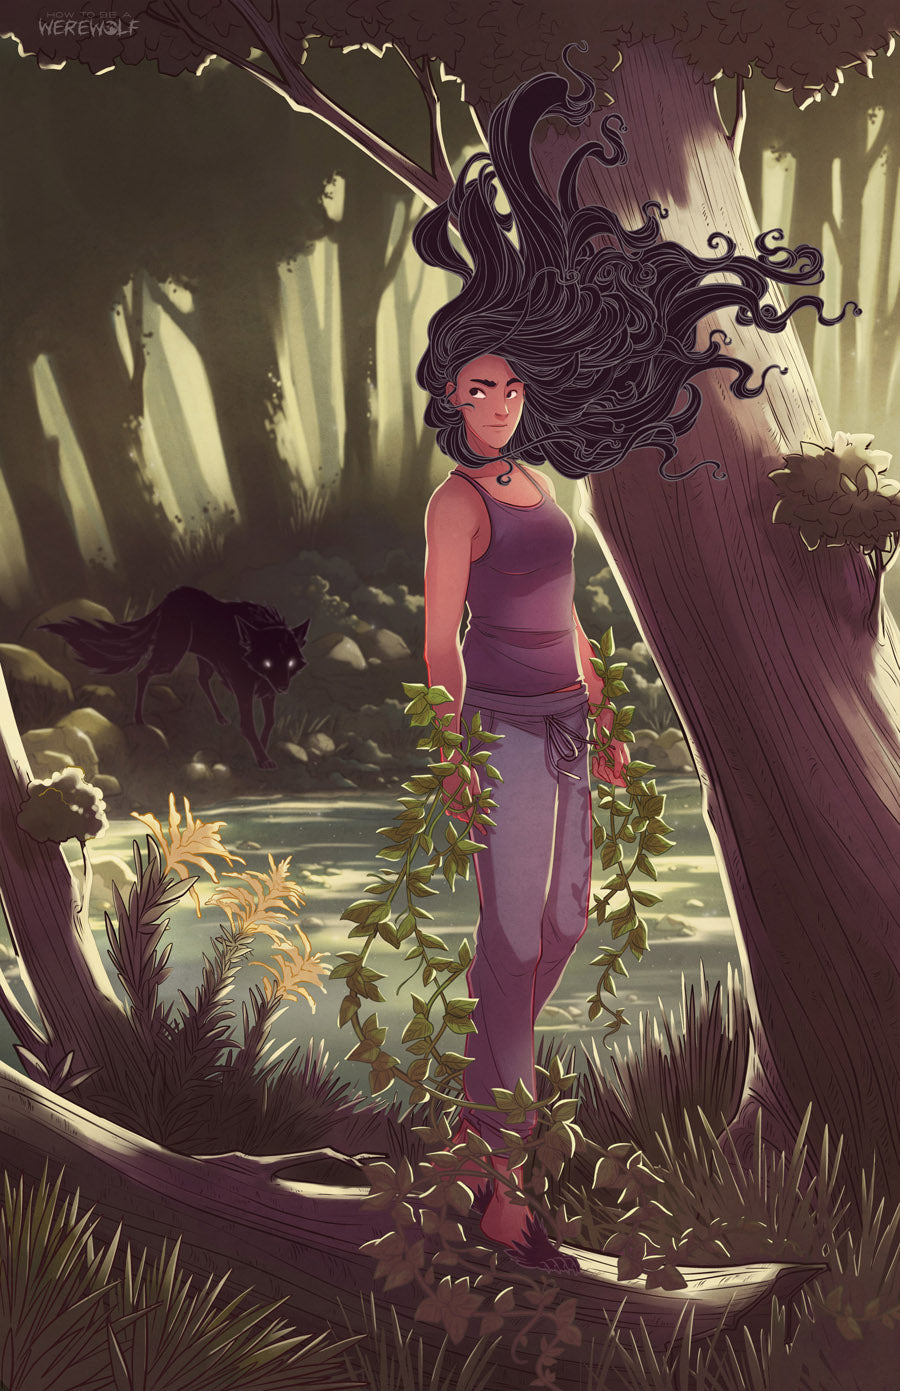 Chapter 10 Cover Print from How To Be a Werewolf - Webcomic Merchandise